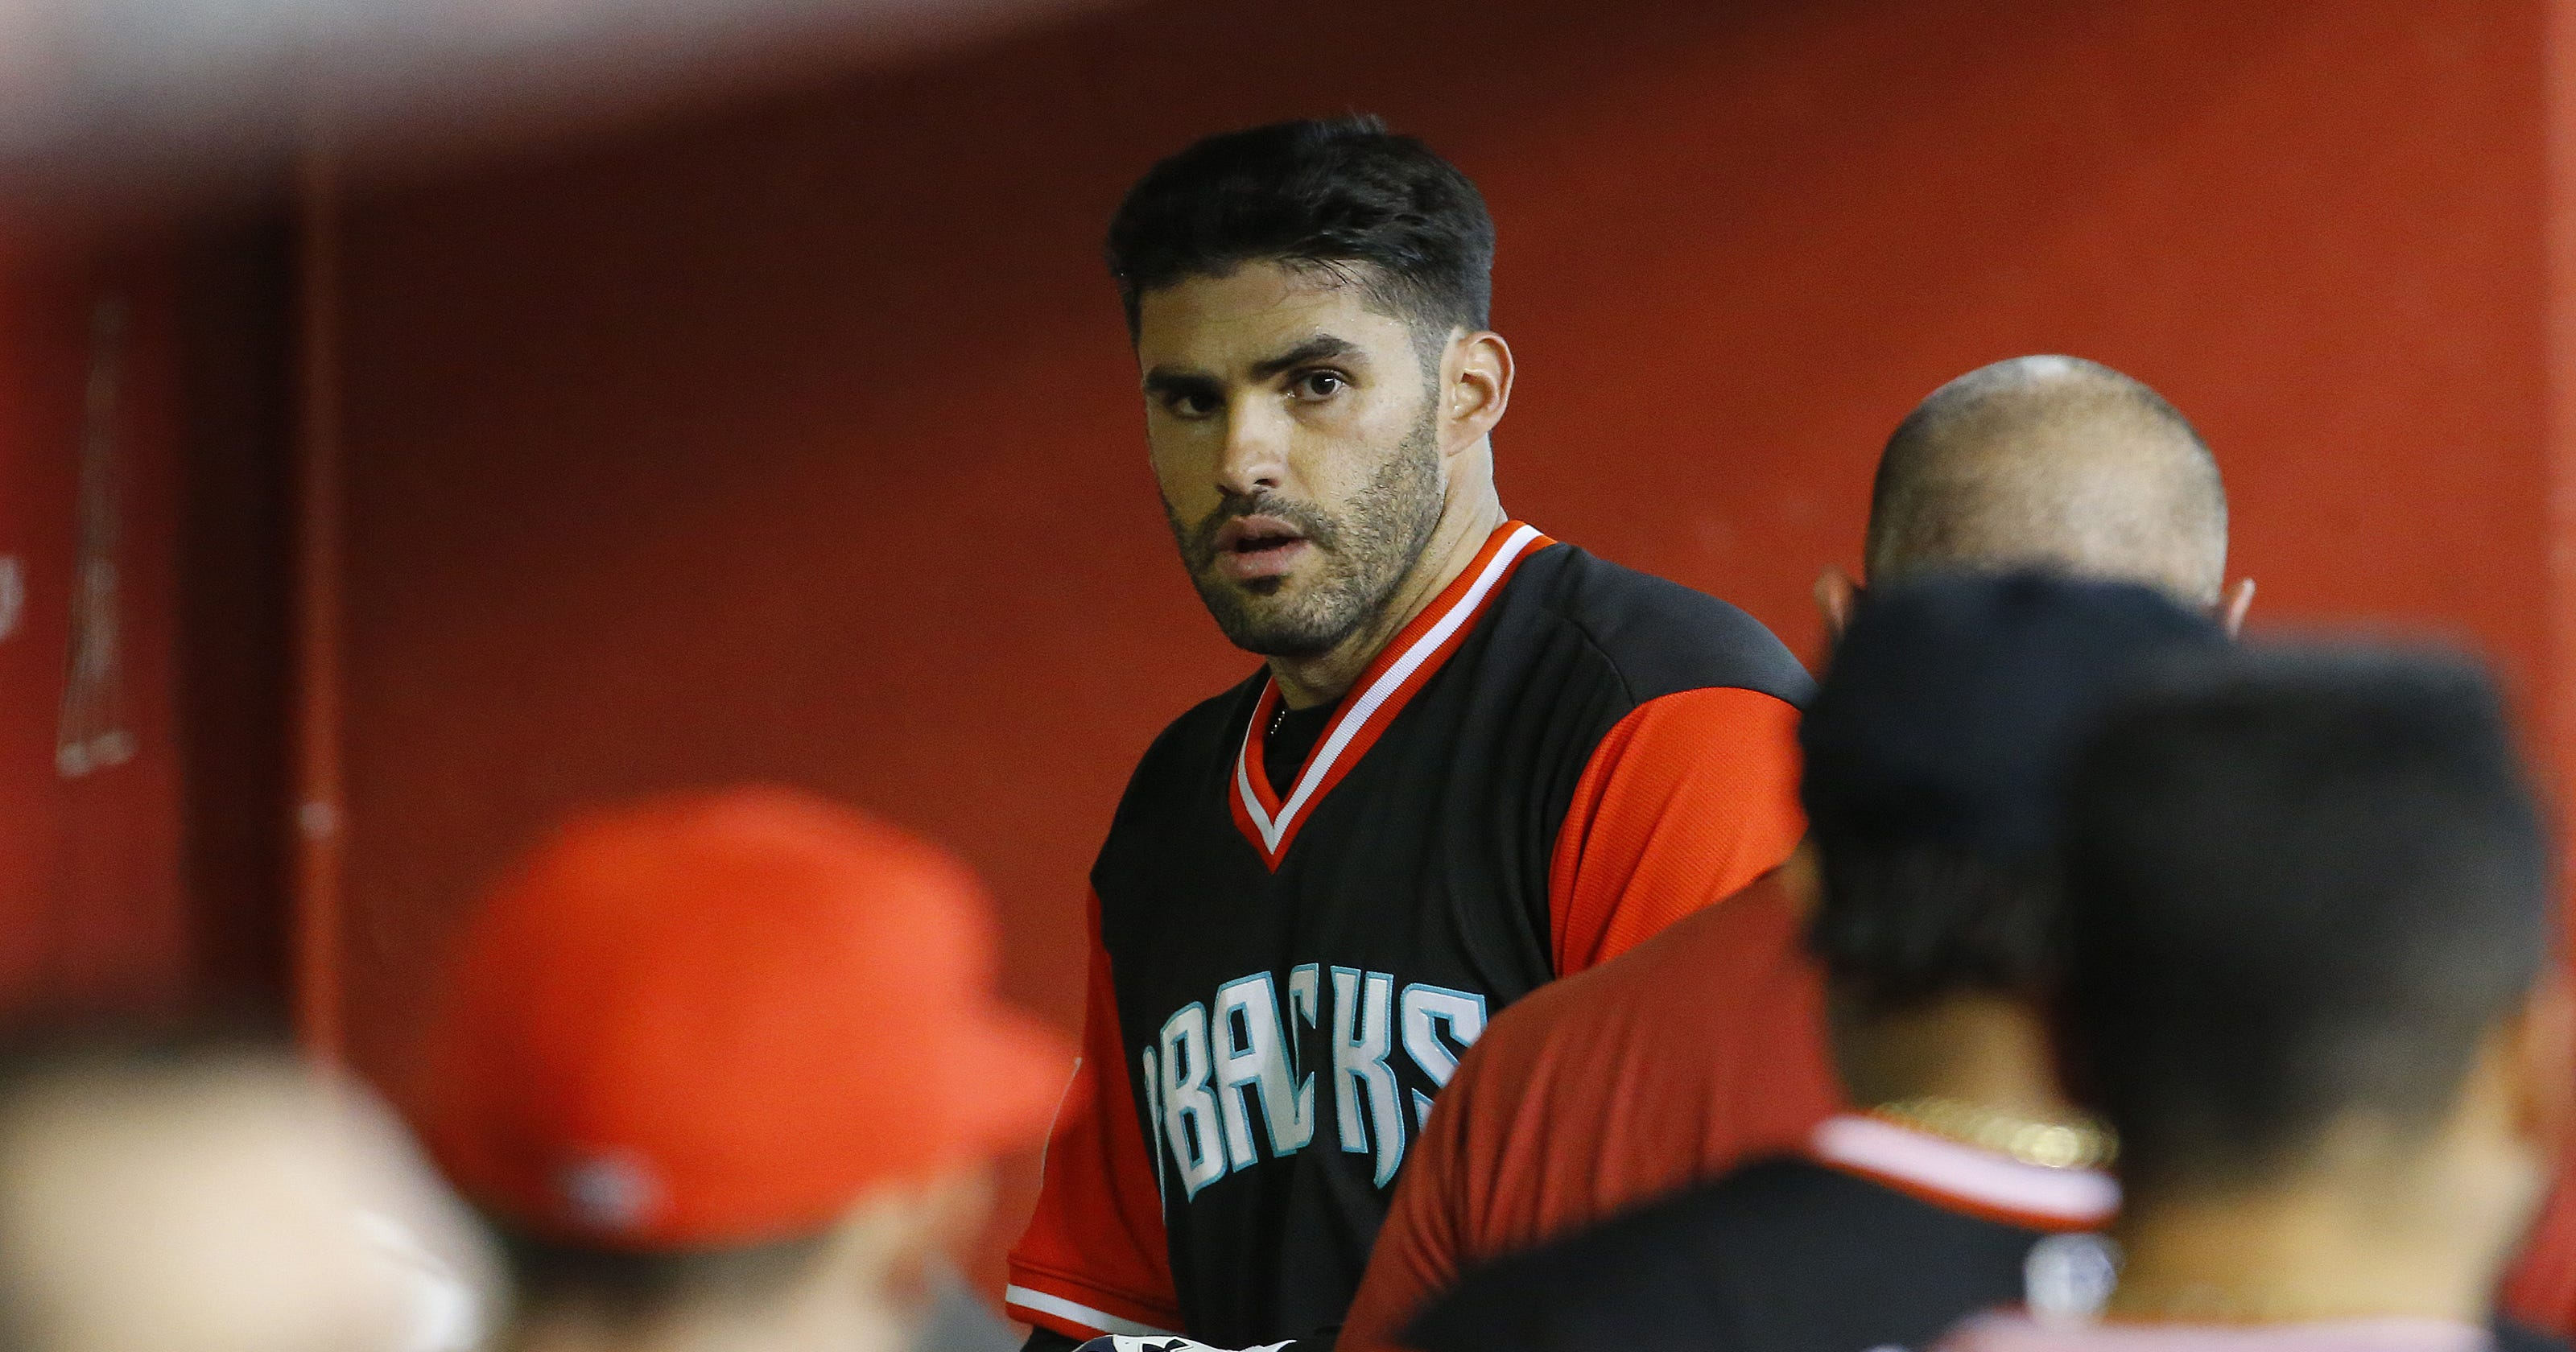 promo code cda66 97a13 J.D. Martinez signs with Red Sox, Dbacks continue offseason ...